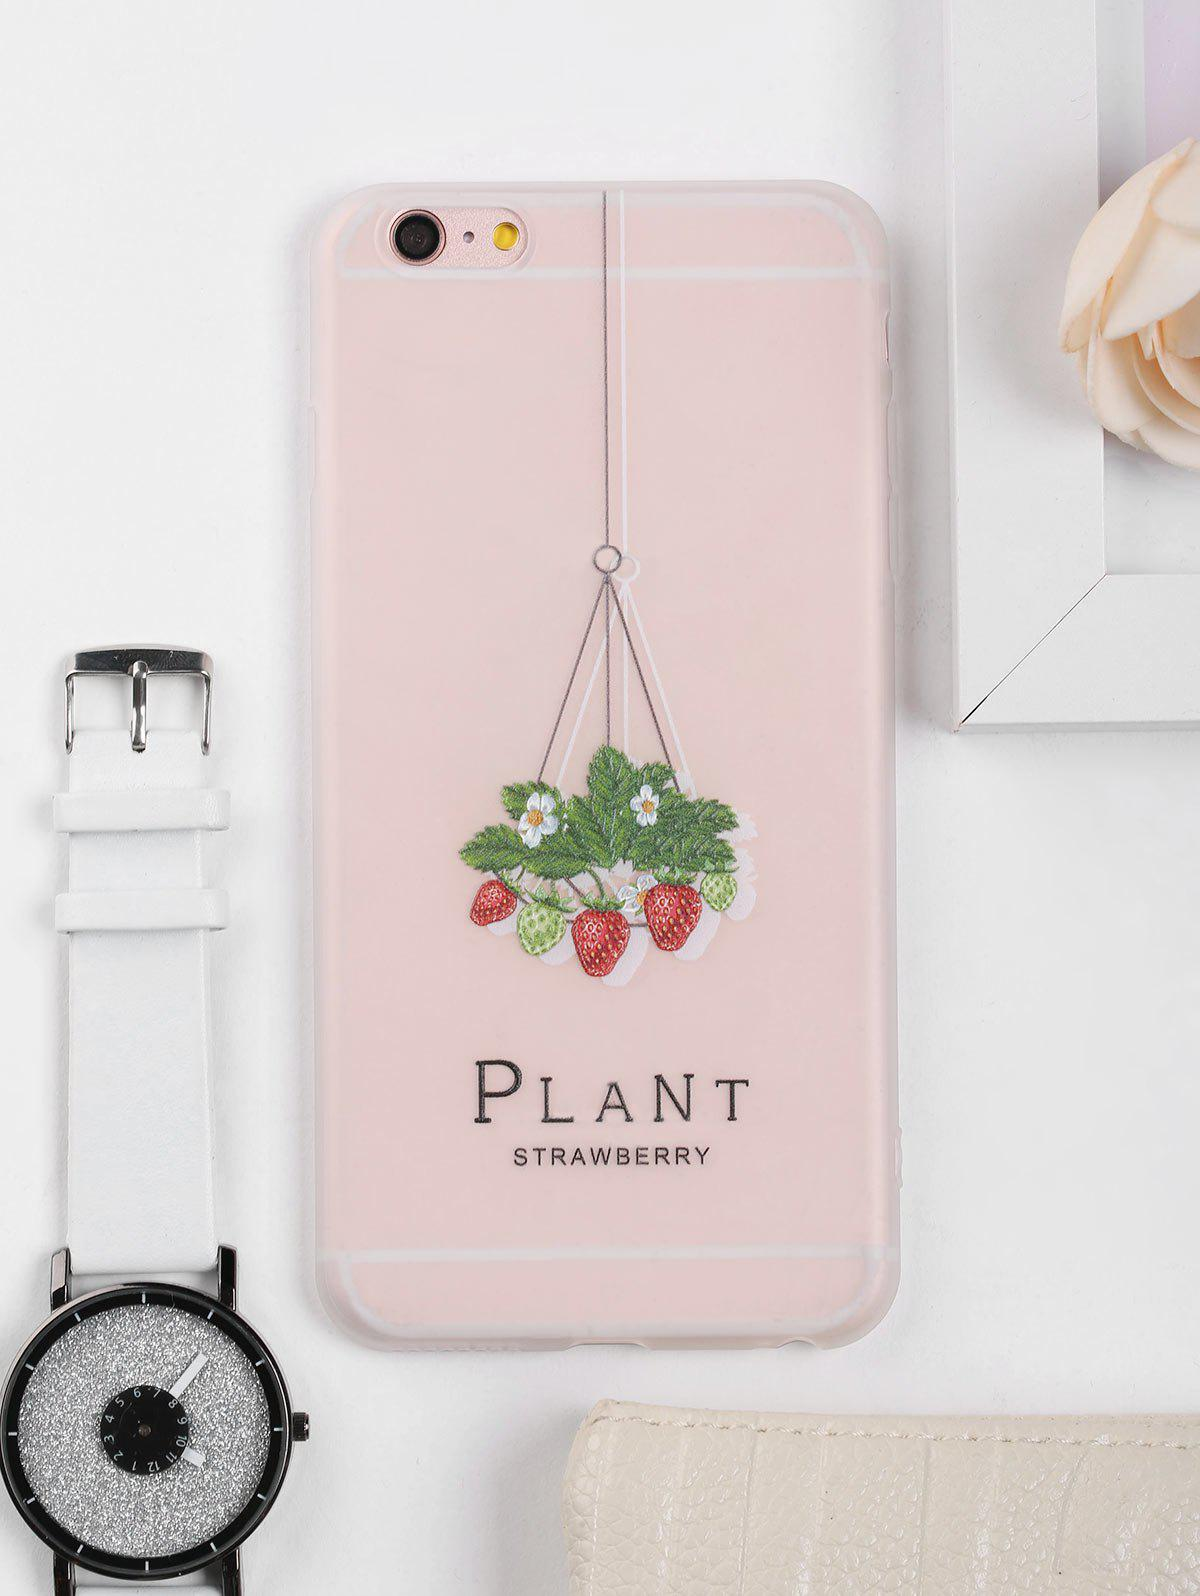 Strawberry Pattern Soft Phone Case For Iphone - CLEAR WHITE FOR IPHONE 6 PLUS / 6S PLUS